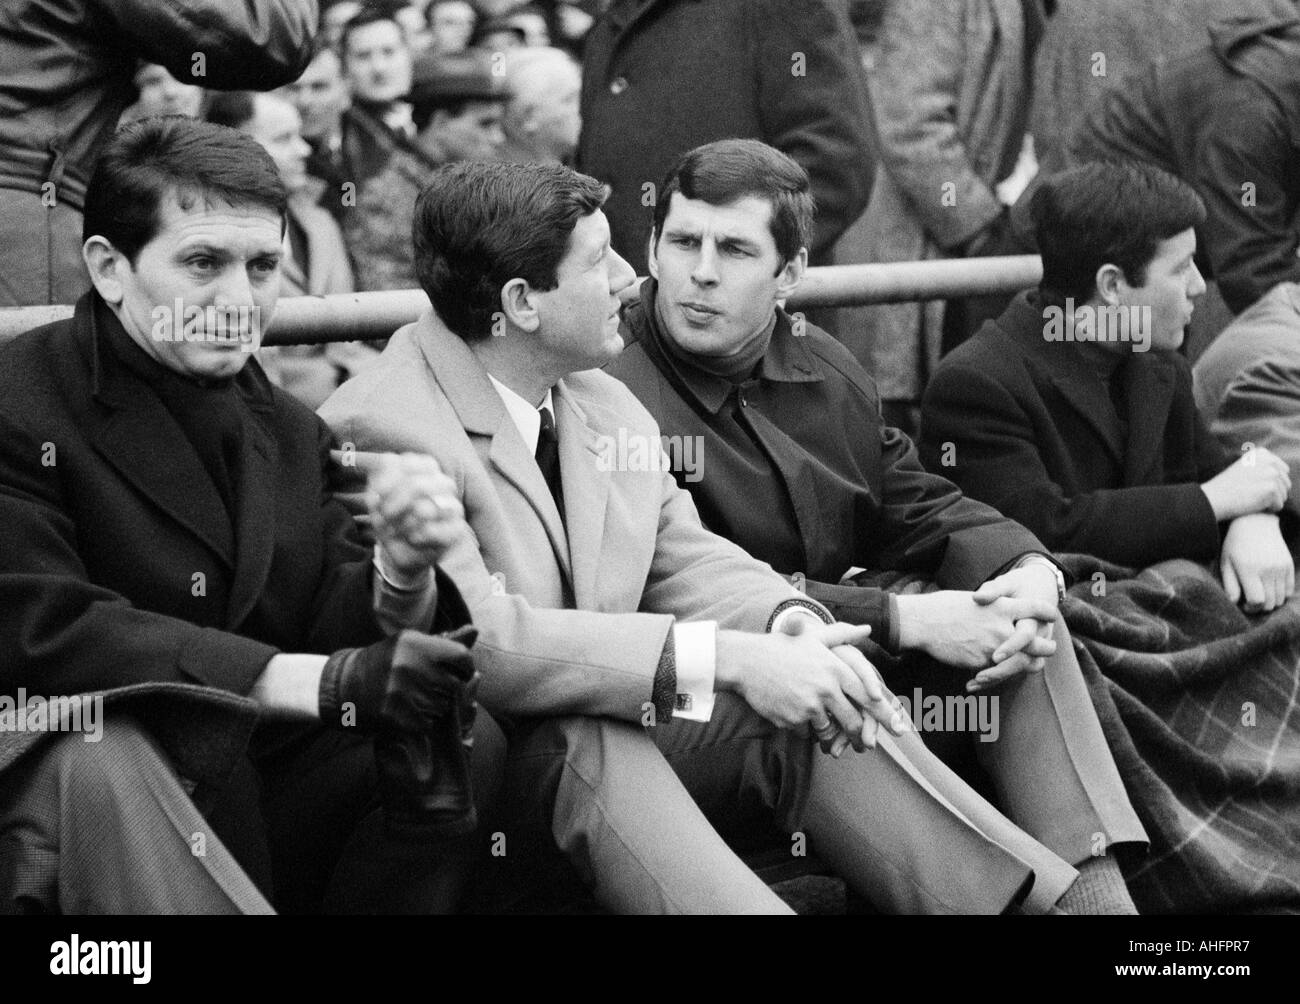 football, Bundesliga, 1967/1968, FC Schalke 04 versus 1. FC Cologne 1:1, Glueckaufkampfbahn Stadium in Gelsenkirchen, visitors sitting in the stand, Horst Szymaniak and Lothar Emmerich - Stock Image